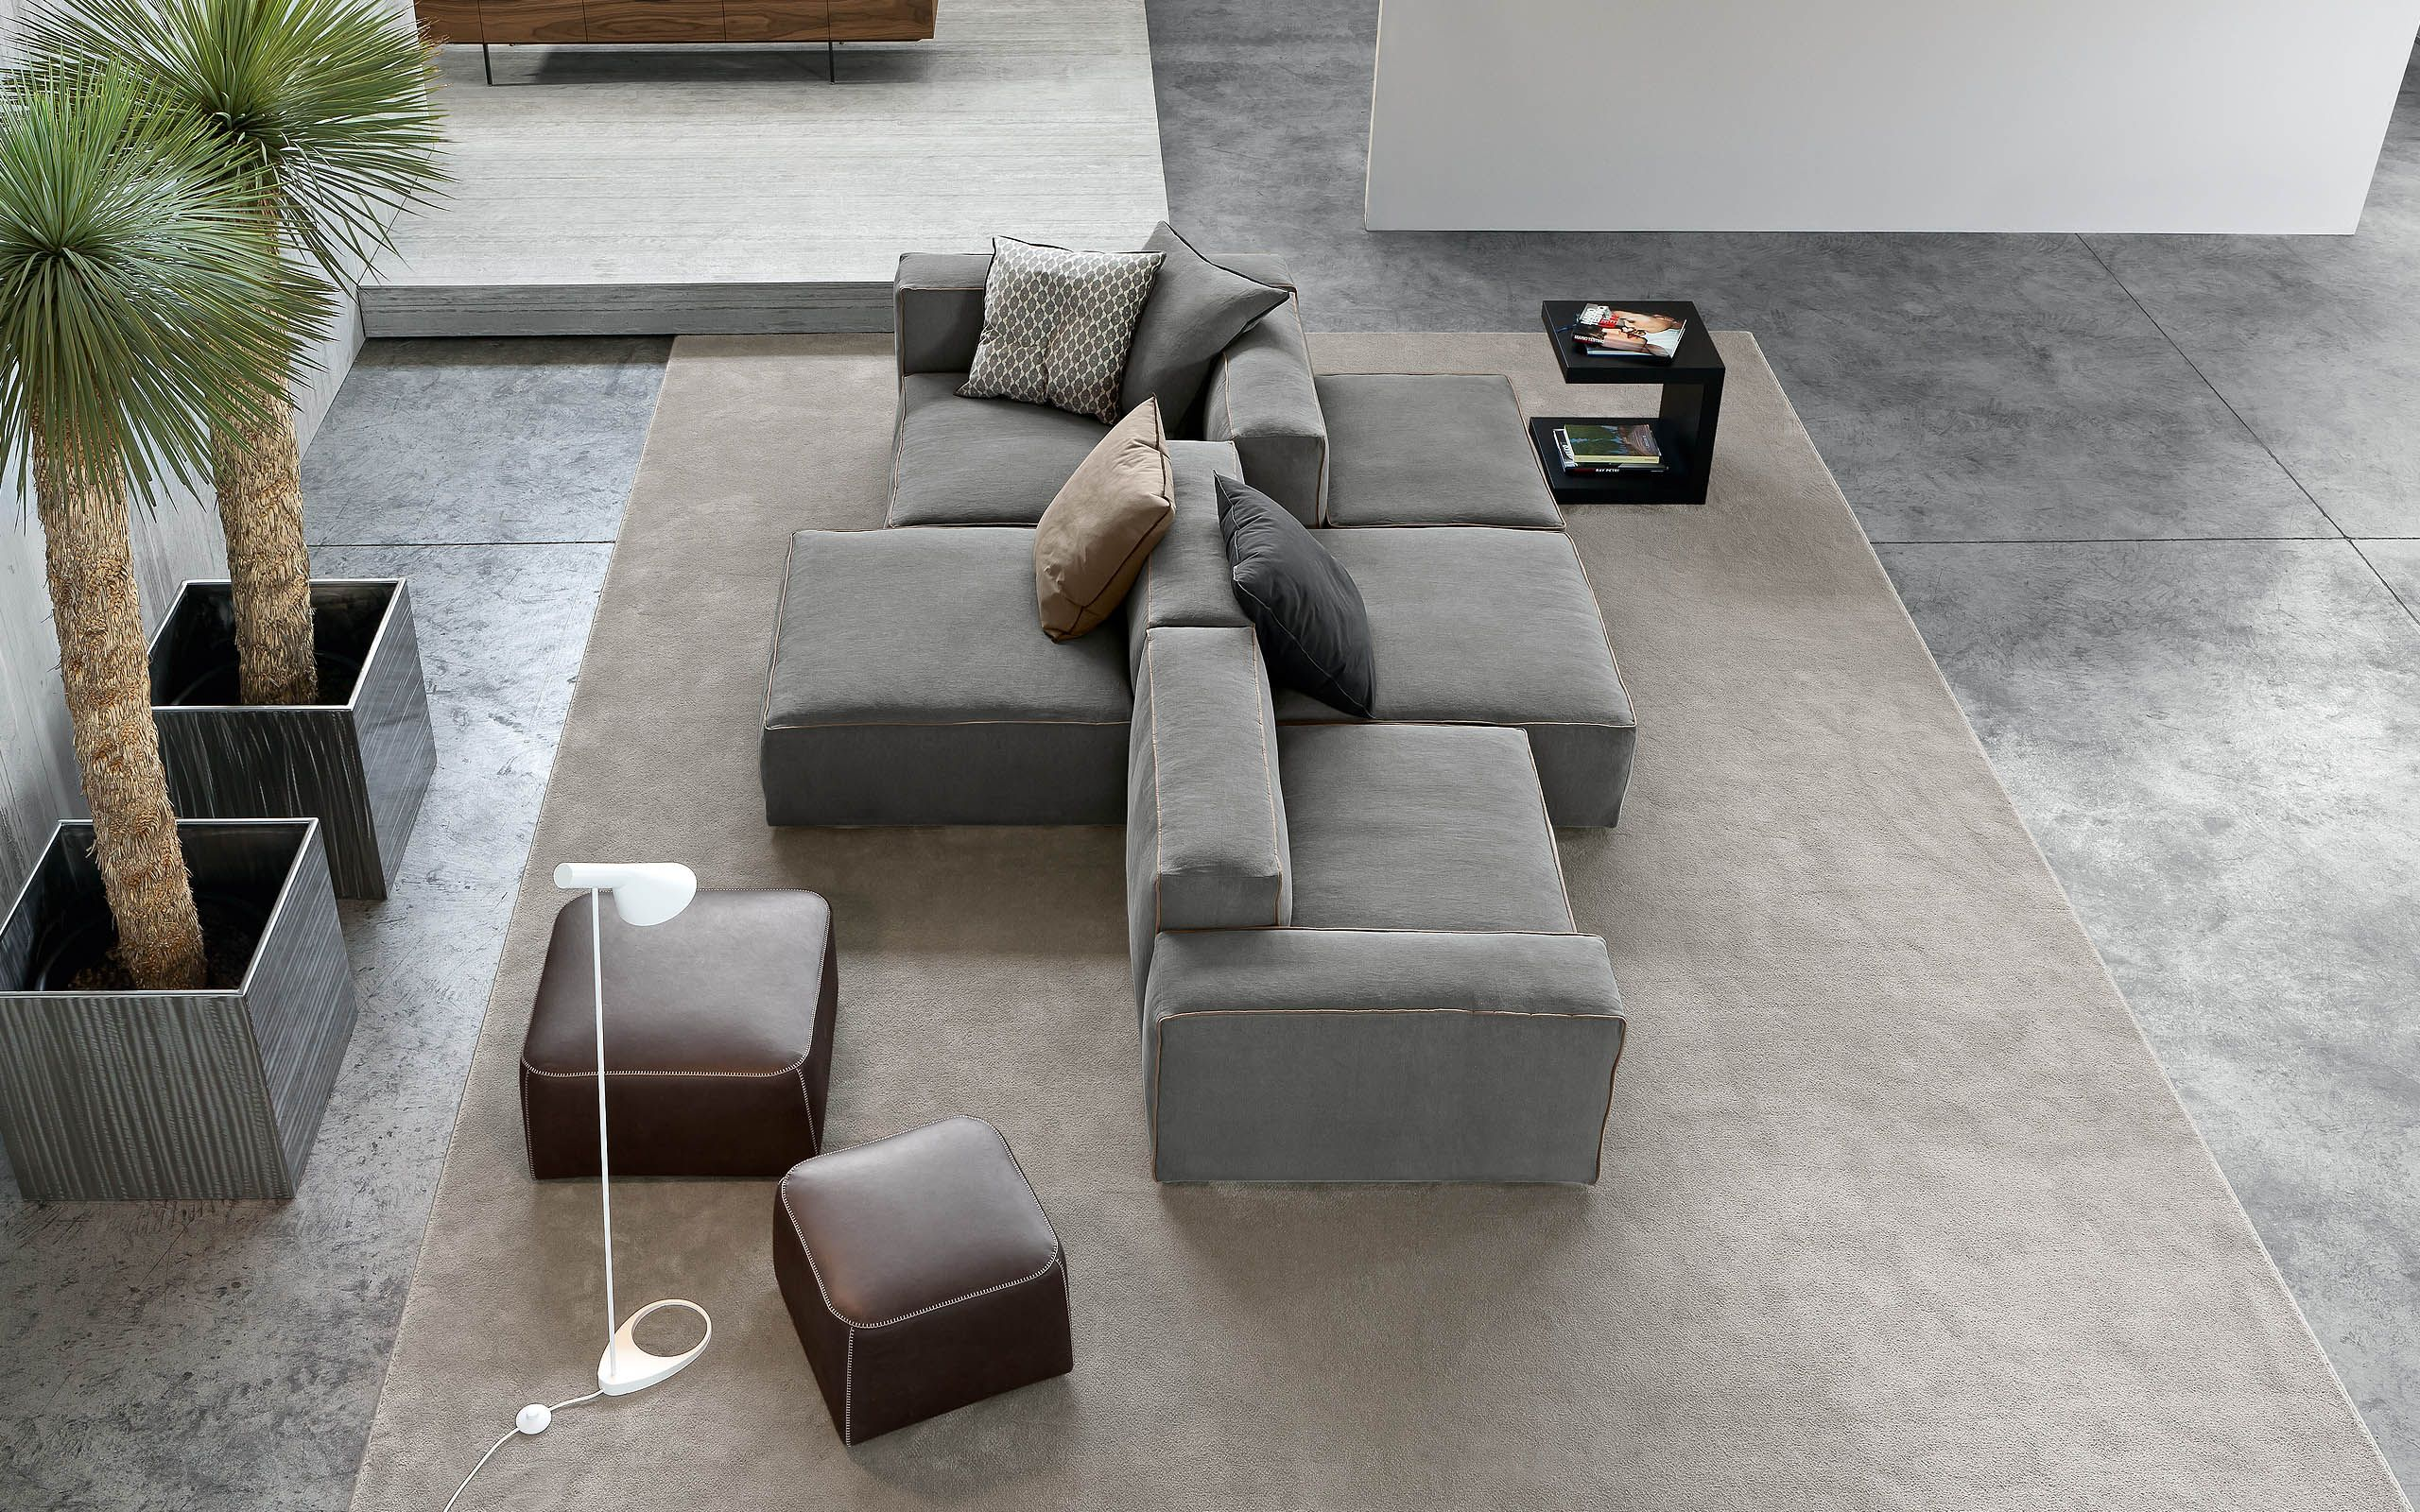 Divano Albert Molteni Divano Reef Di Flexteam Mynewhome Living Sofa Homemade Sofa